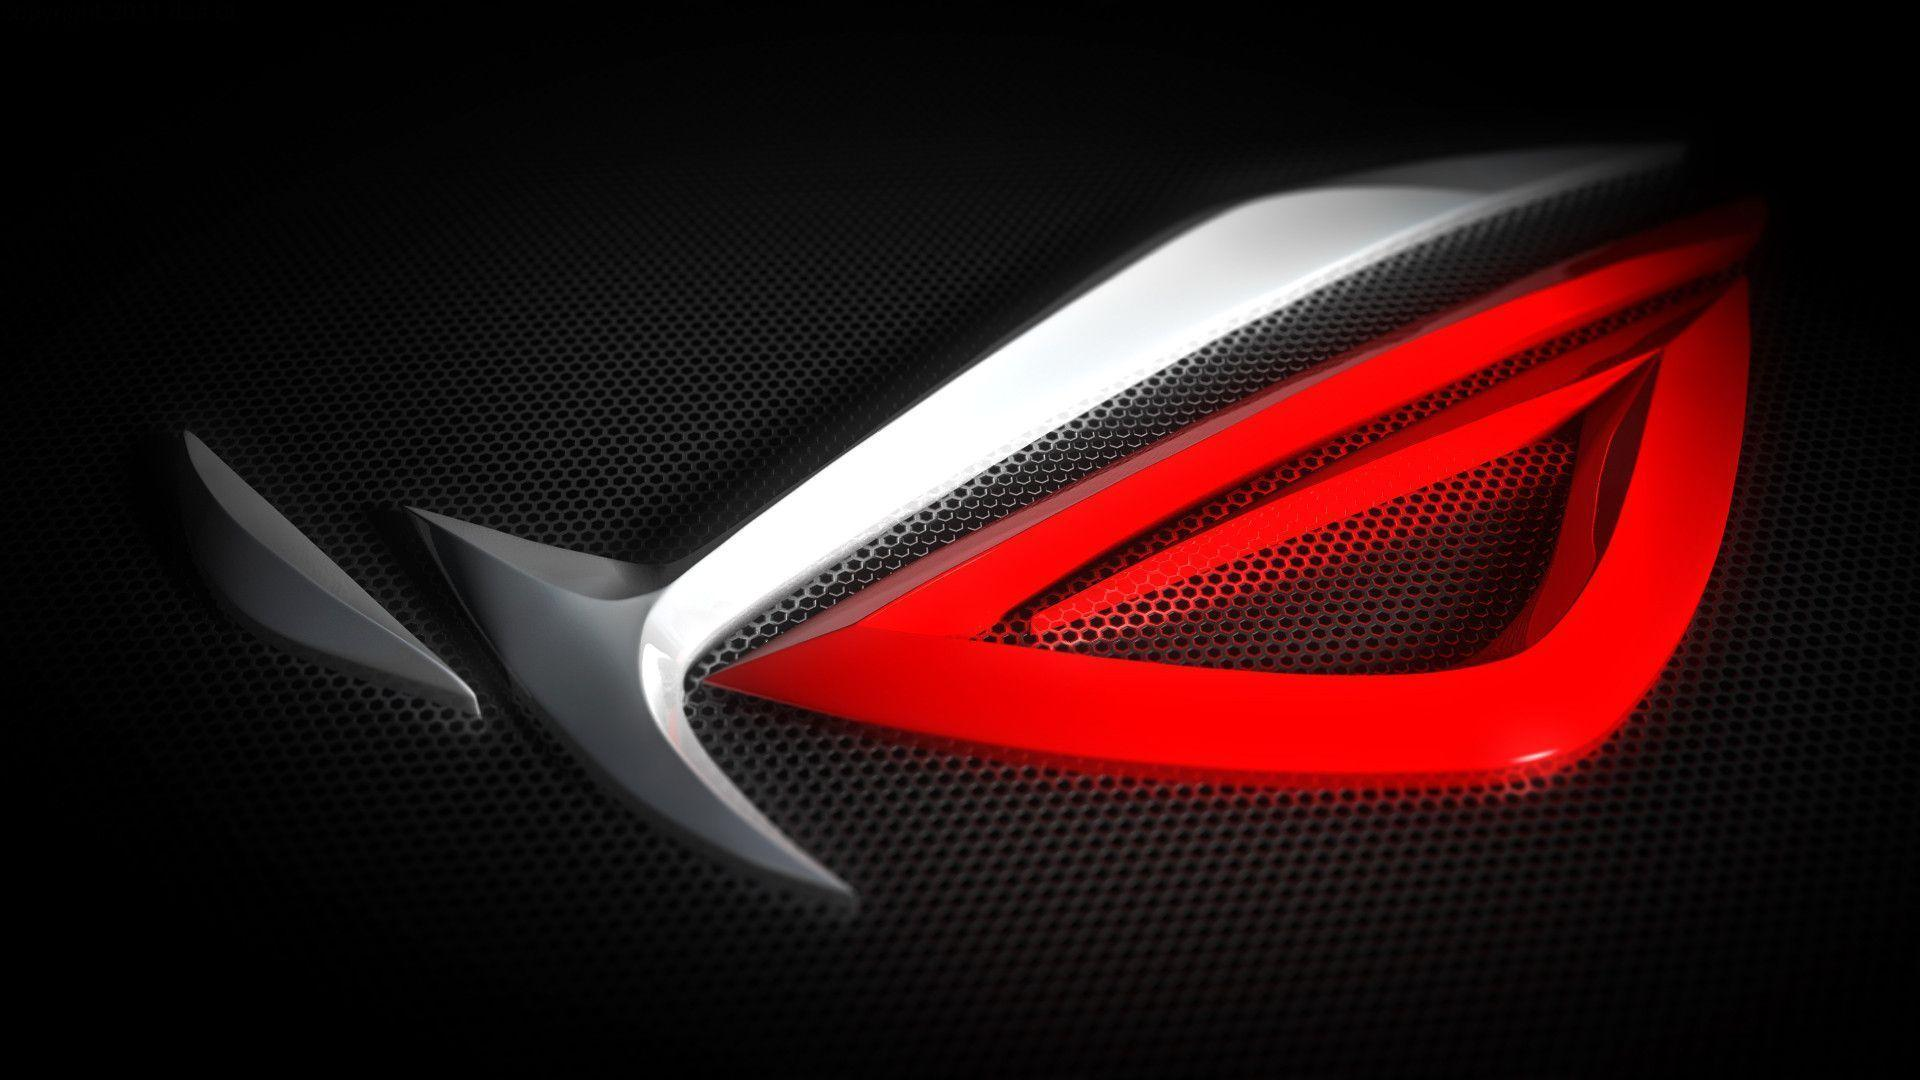 Red Asus Wallpaper: Republic Of Gamers Wallpapers